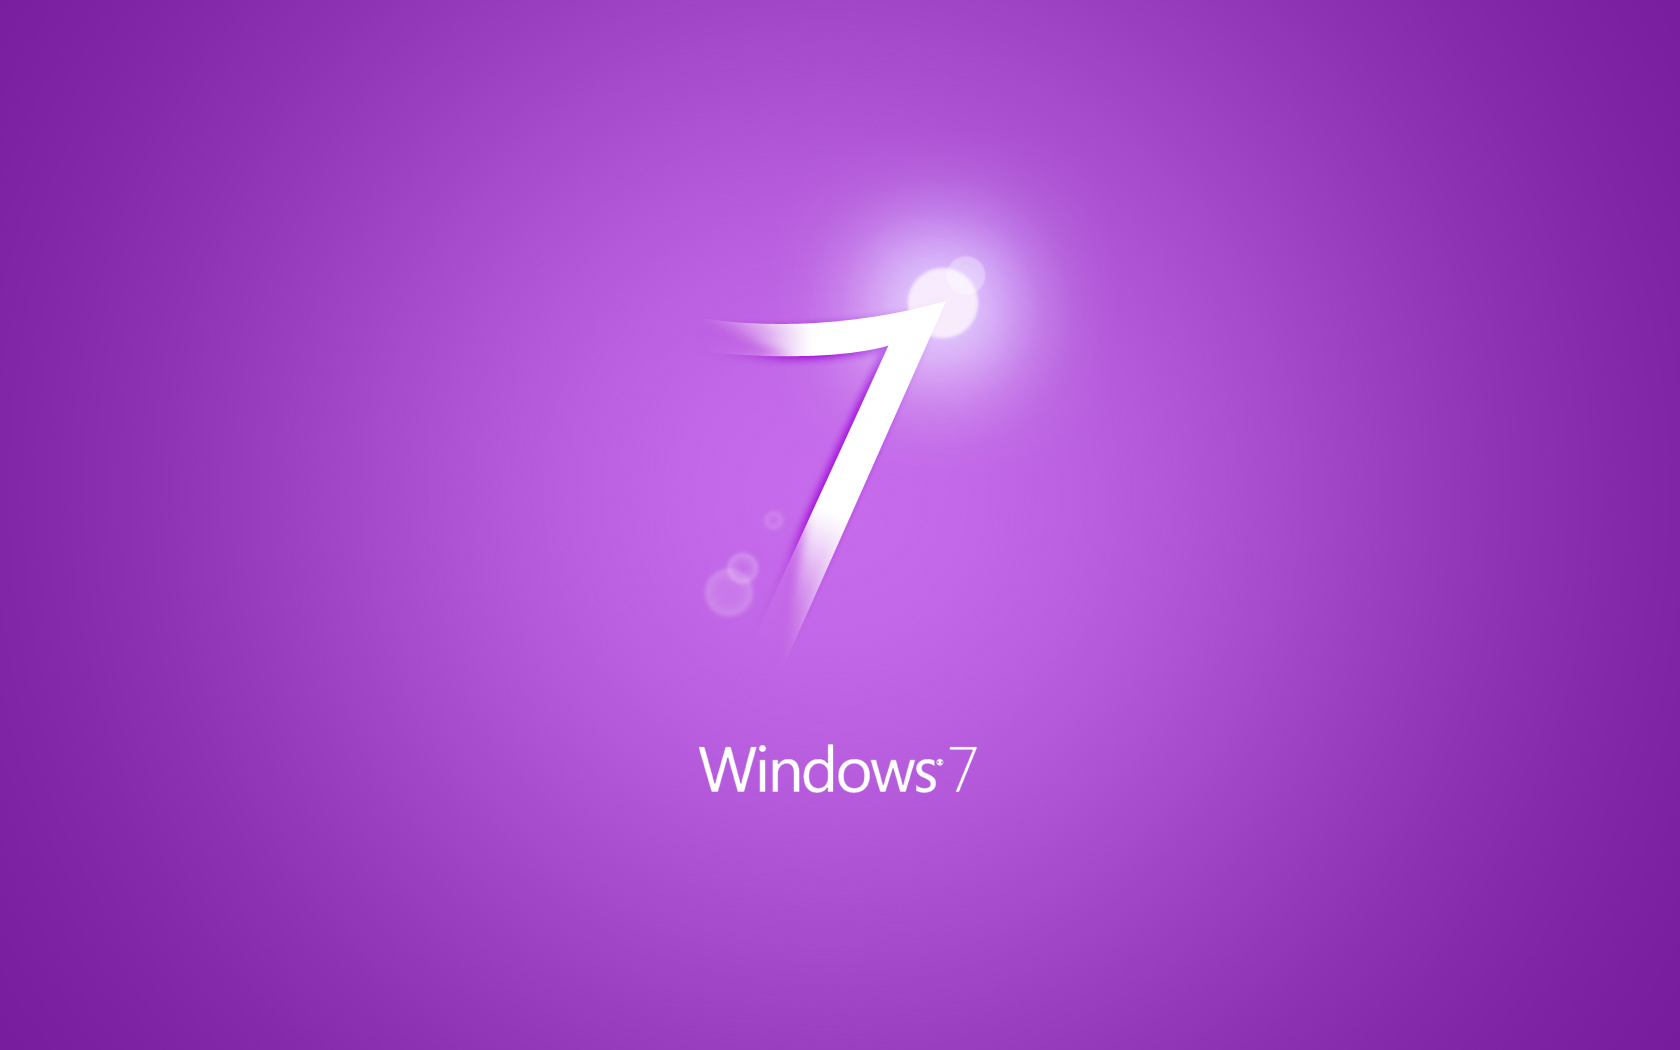 Windows 7 Purple18296778 - Windows 7 Purple - Windows, Purple